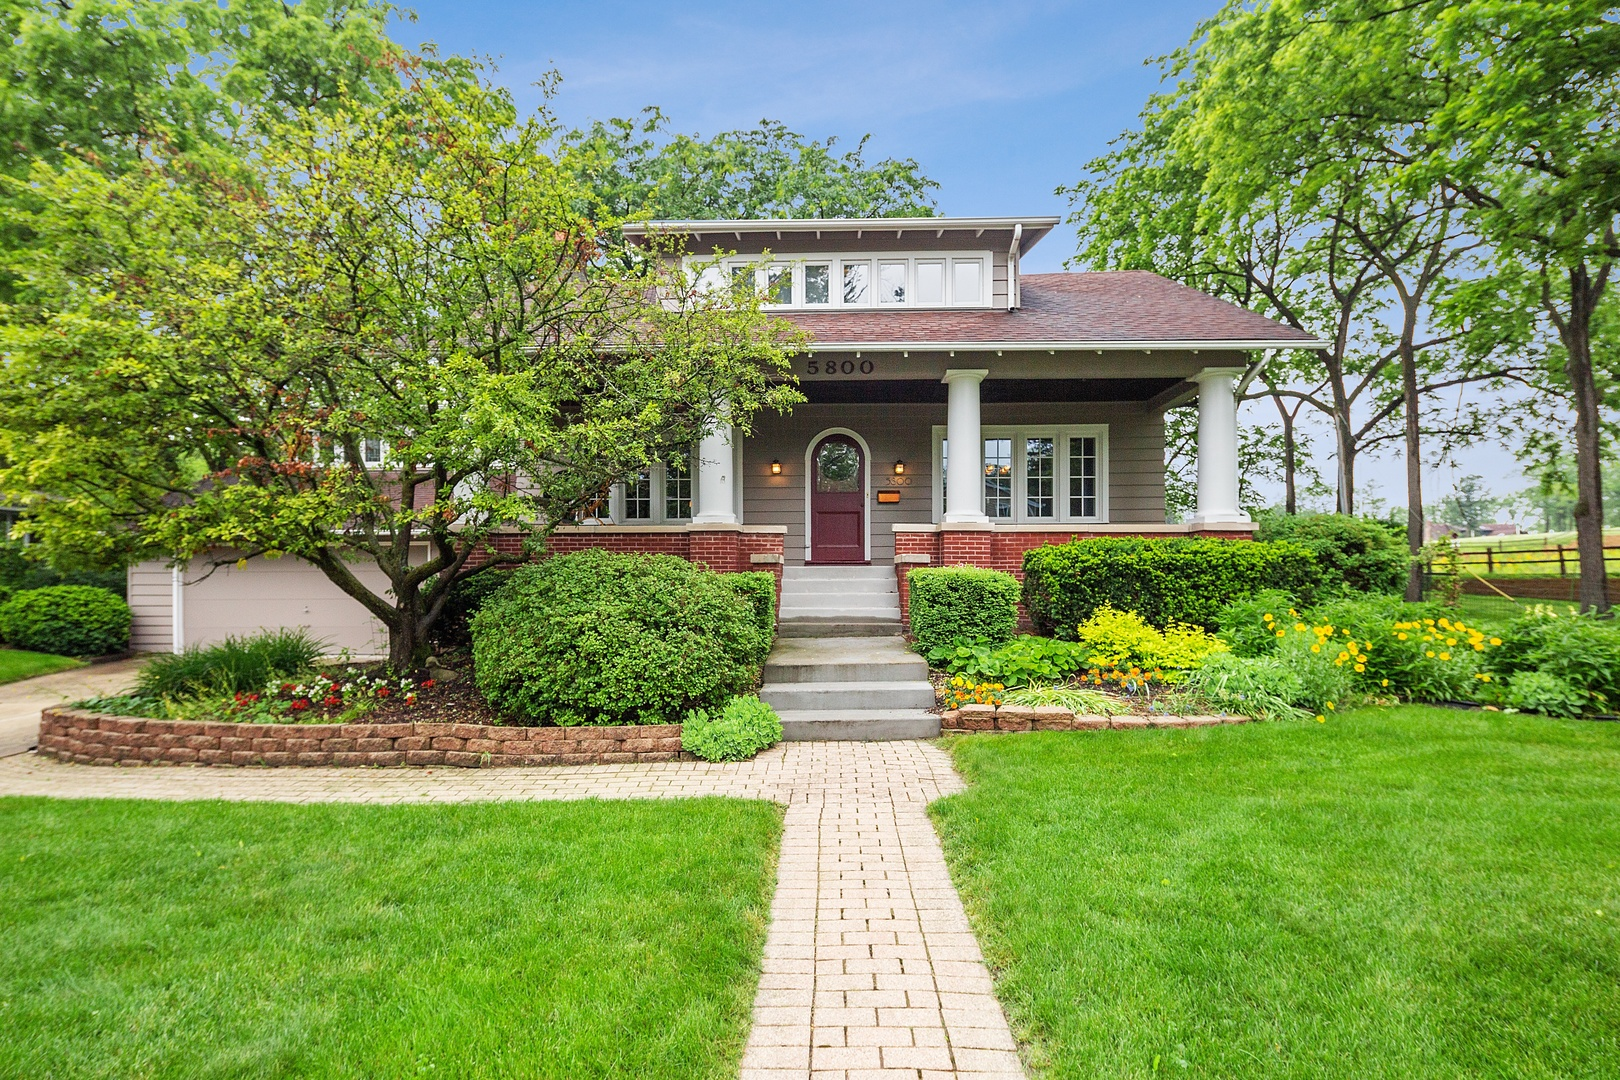 Photo for 5800 Carpenter Street, DOWNERS GROVE, IL 60516 (MLS # 10302731)